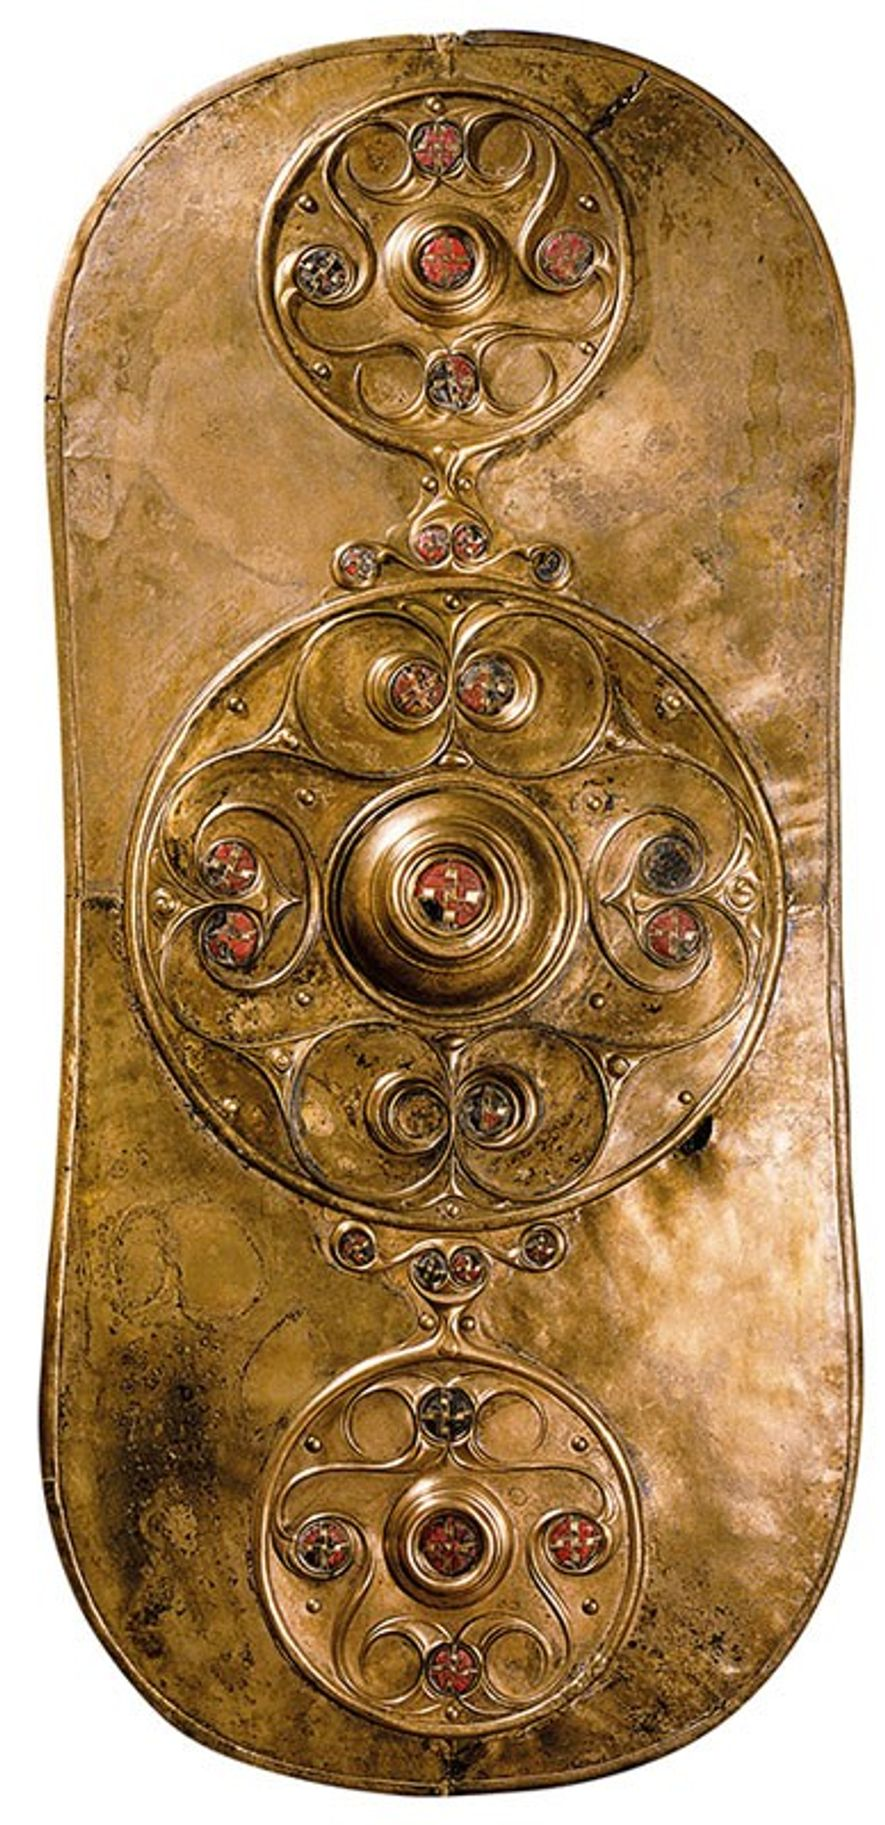 Found in the Thames in 1857, a copper shield dates from 350-50 B.C. Its fine craftsmanship hints at the cultural complexity of Britain's tribal society. British Museum, London